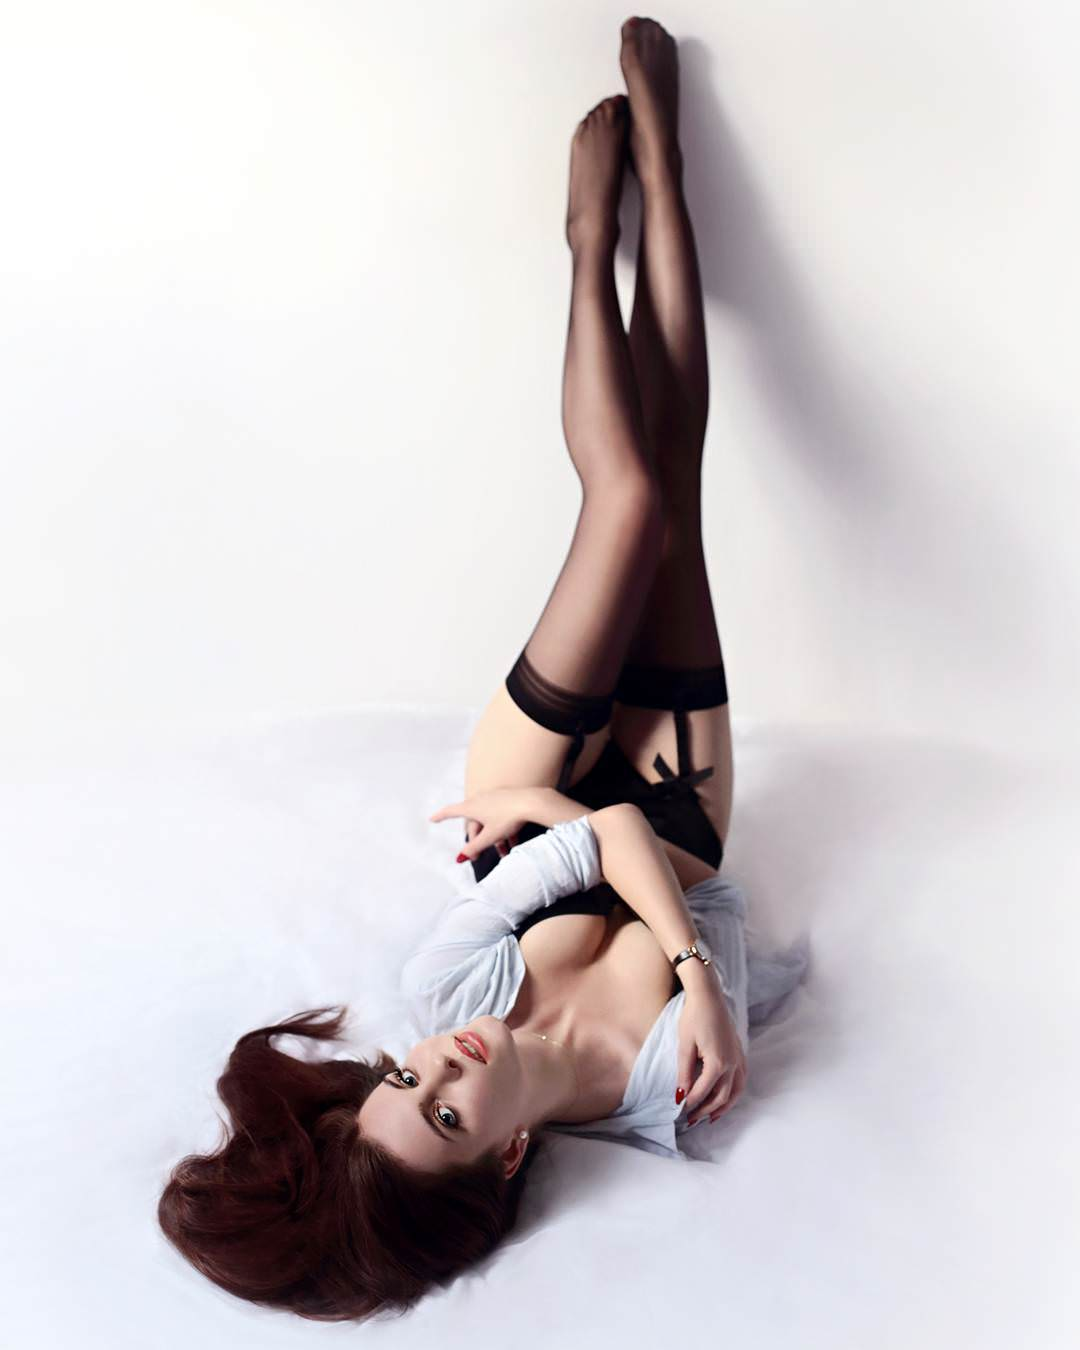 black stocking babes and party dress with stockings